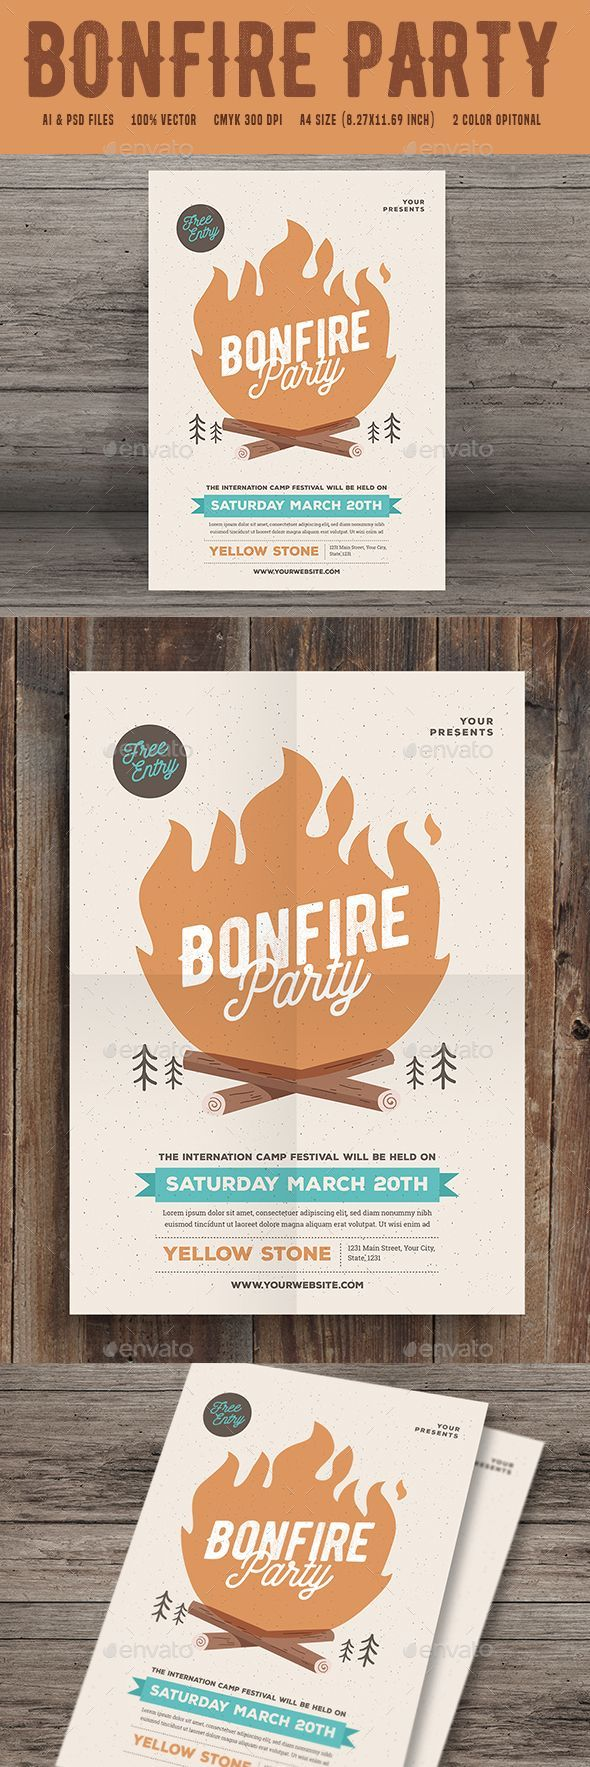 Bonfire Event Party  Bonfires Ai Illustrator And Party Flyer